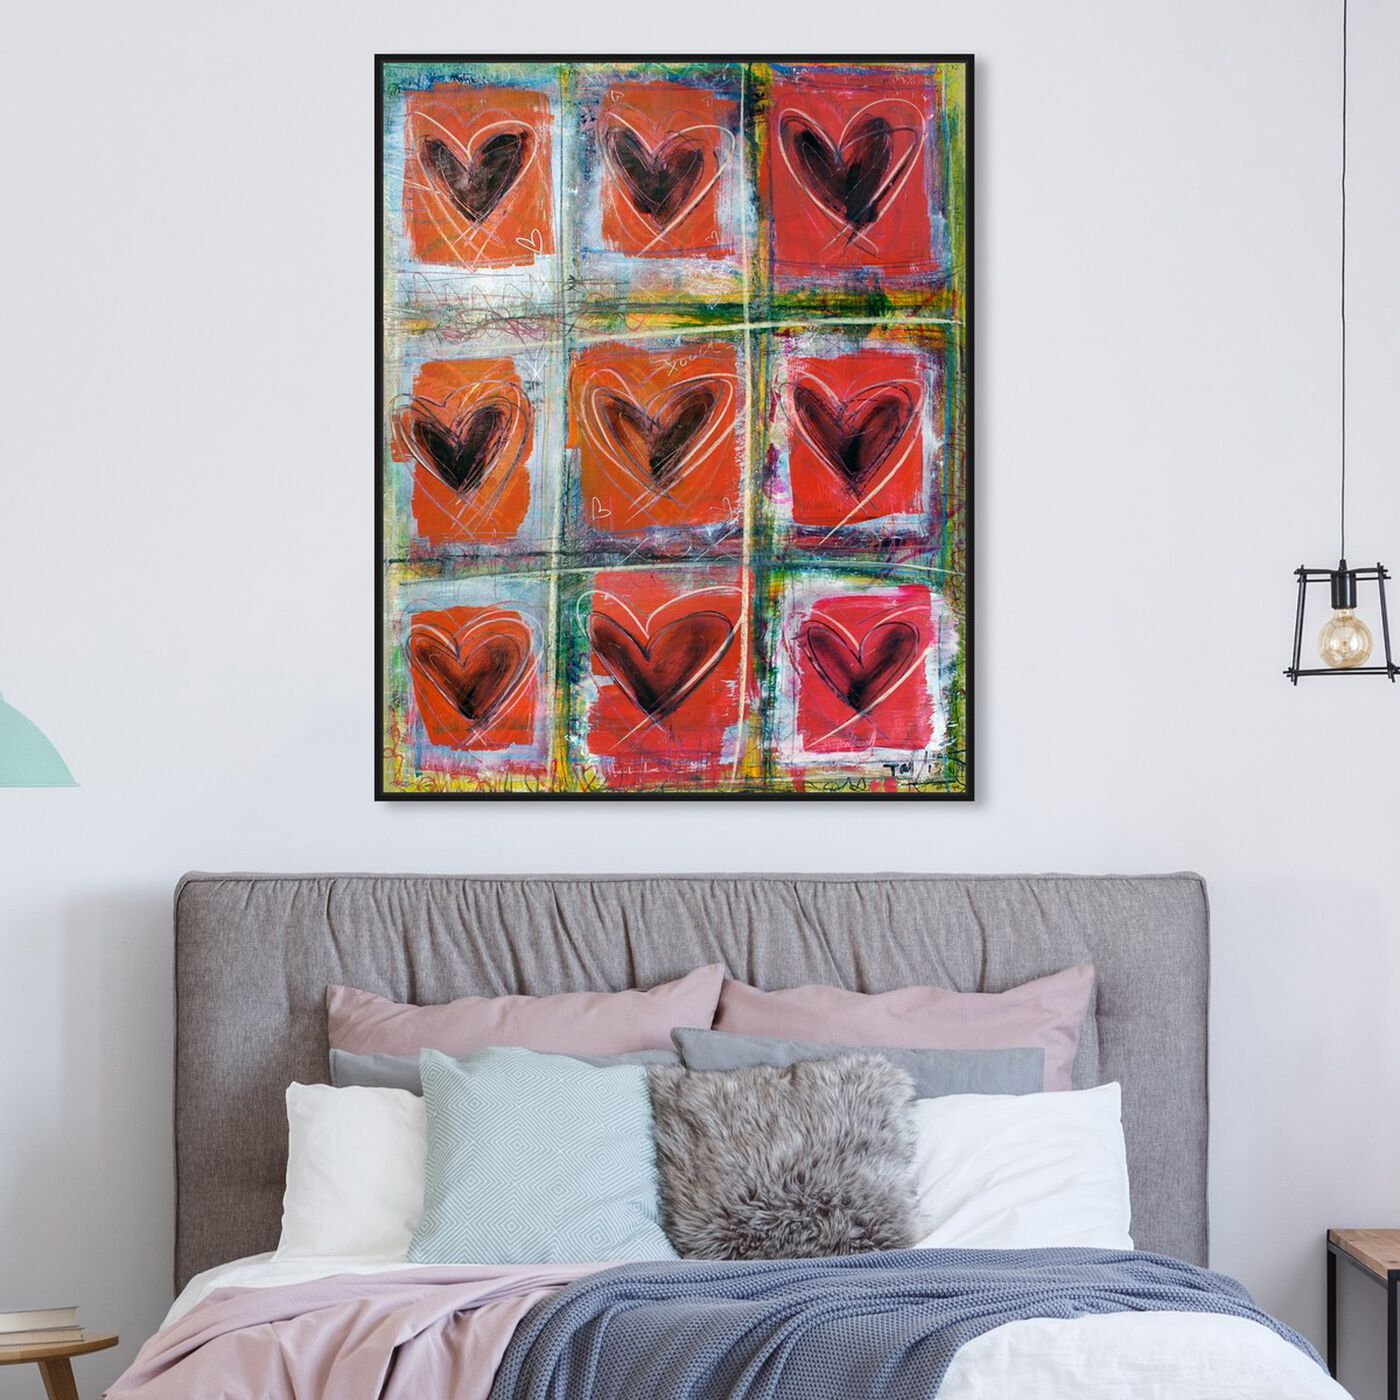 Hanging view of LoveRED by Tiago Magro featuring symbols and objects and shapes art.